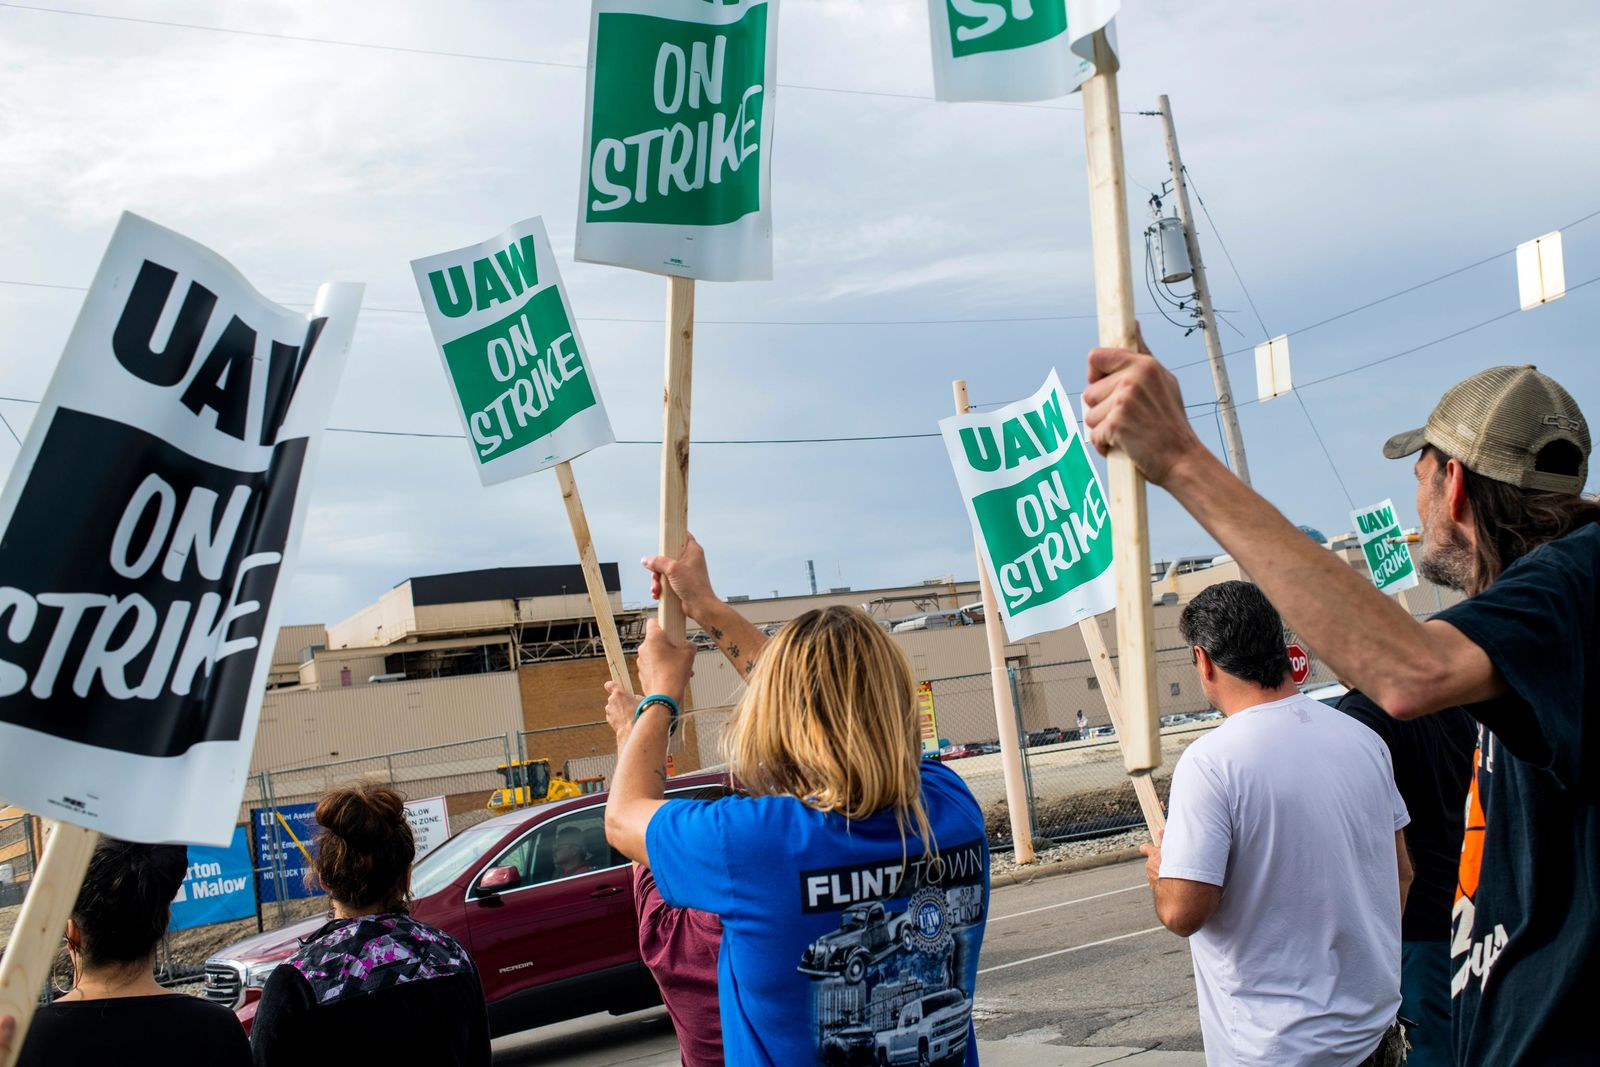 General Motors employees demonstrate outside the Flint Assembly Plant on Sunday, Sept. 15, 2019, in Flint, Mich. The United Auto Workers union says its contract negotiations with GM have broken down and its members will go on strike just before midnight on Sunday.  (Jake May/The Flint Journal via AP)